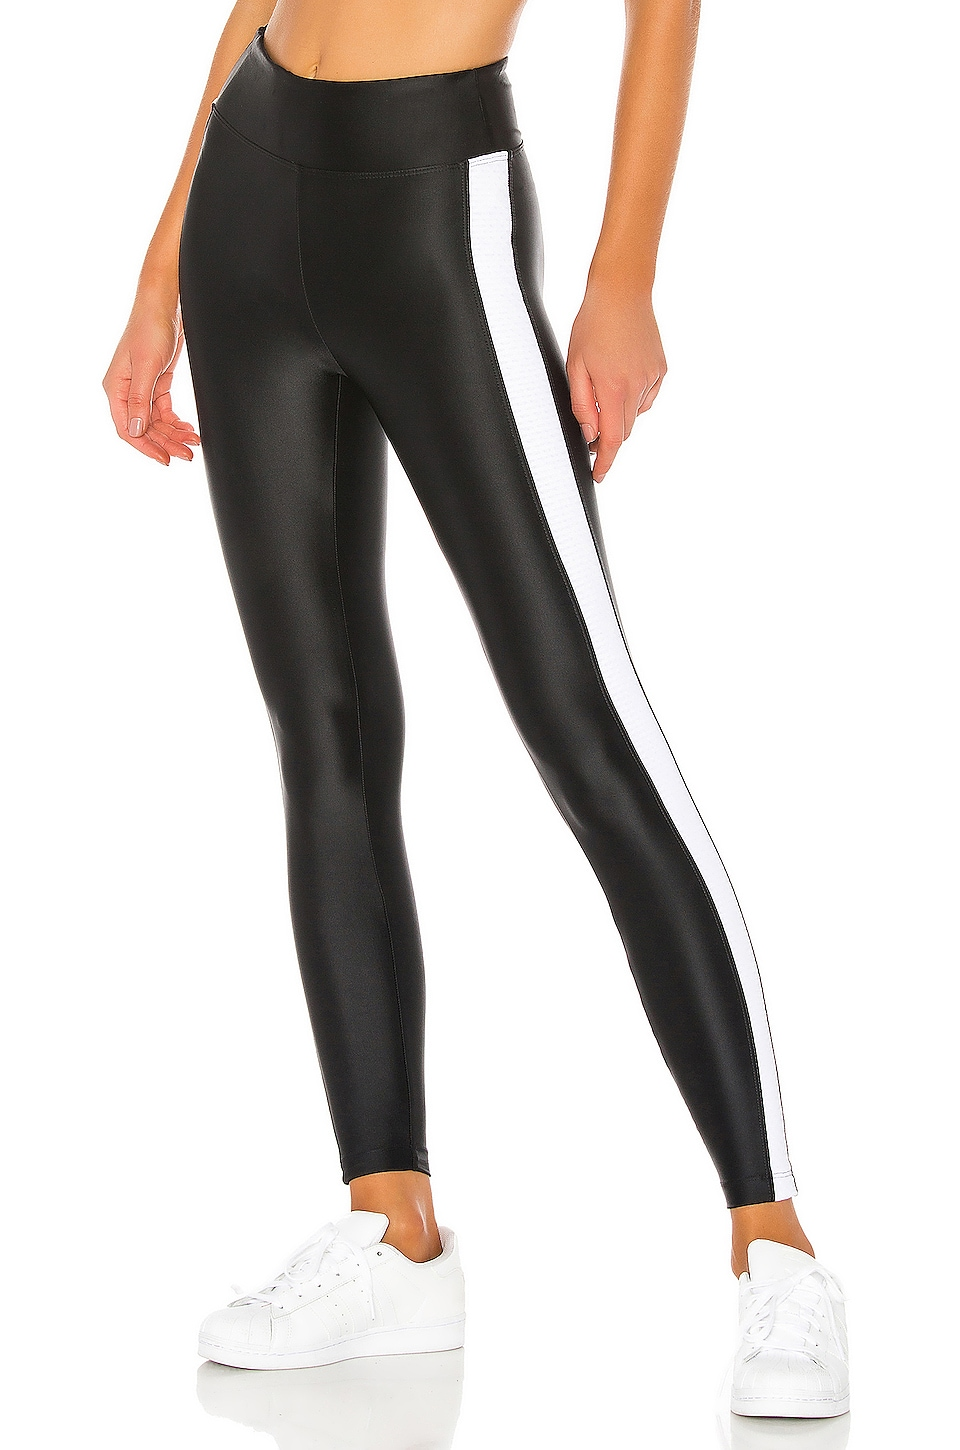 KORAL Dynamic Duo High Rise Energy Legging in Black & White